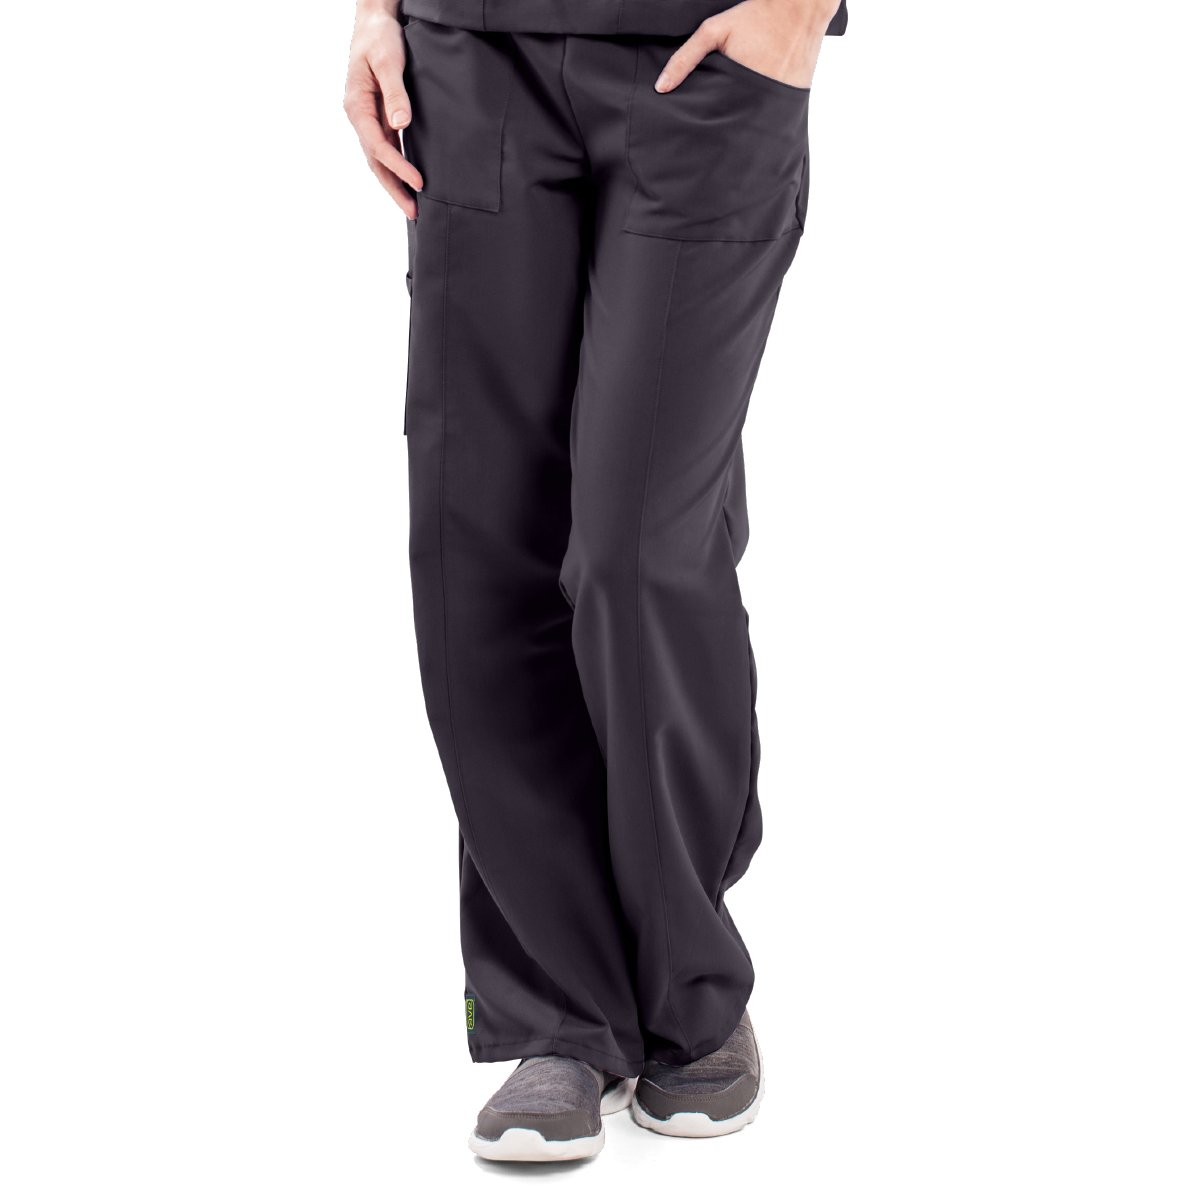 ave Women's Medical Scrub Pants, Pacific ave, Slimming Straight Leg Style Scrub Pant, Cargo Pockets, Great for Nurses, Charcoal, Medium Tall